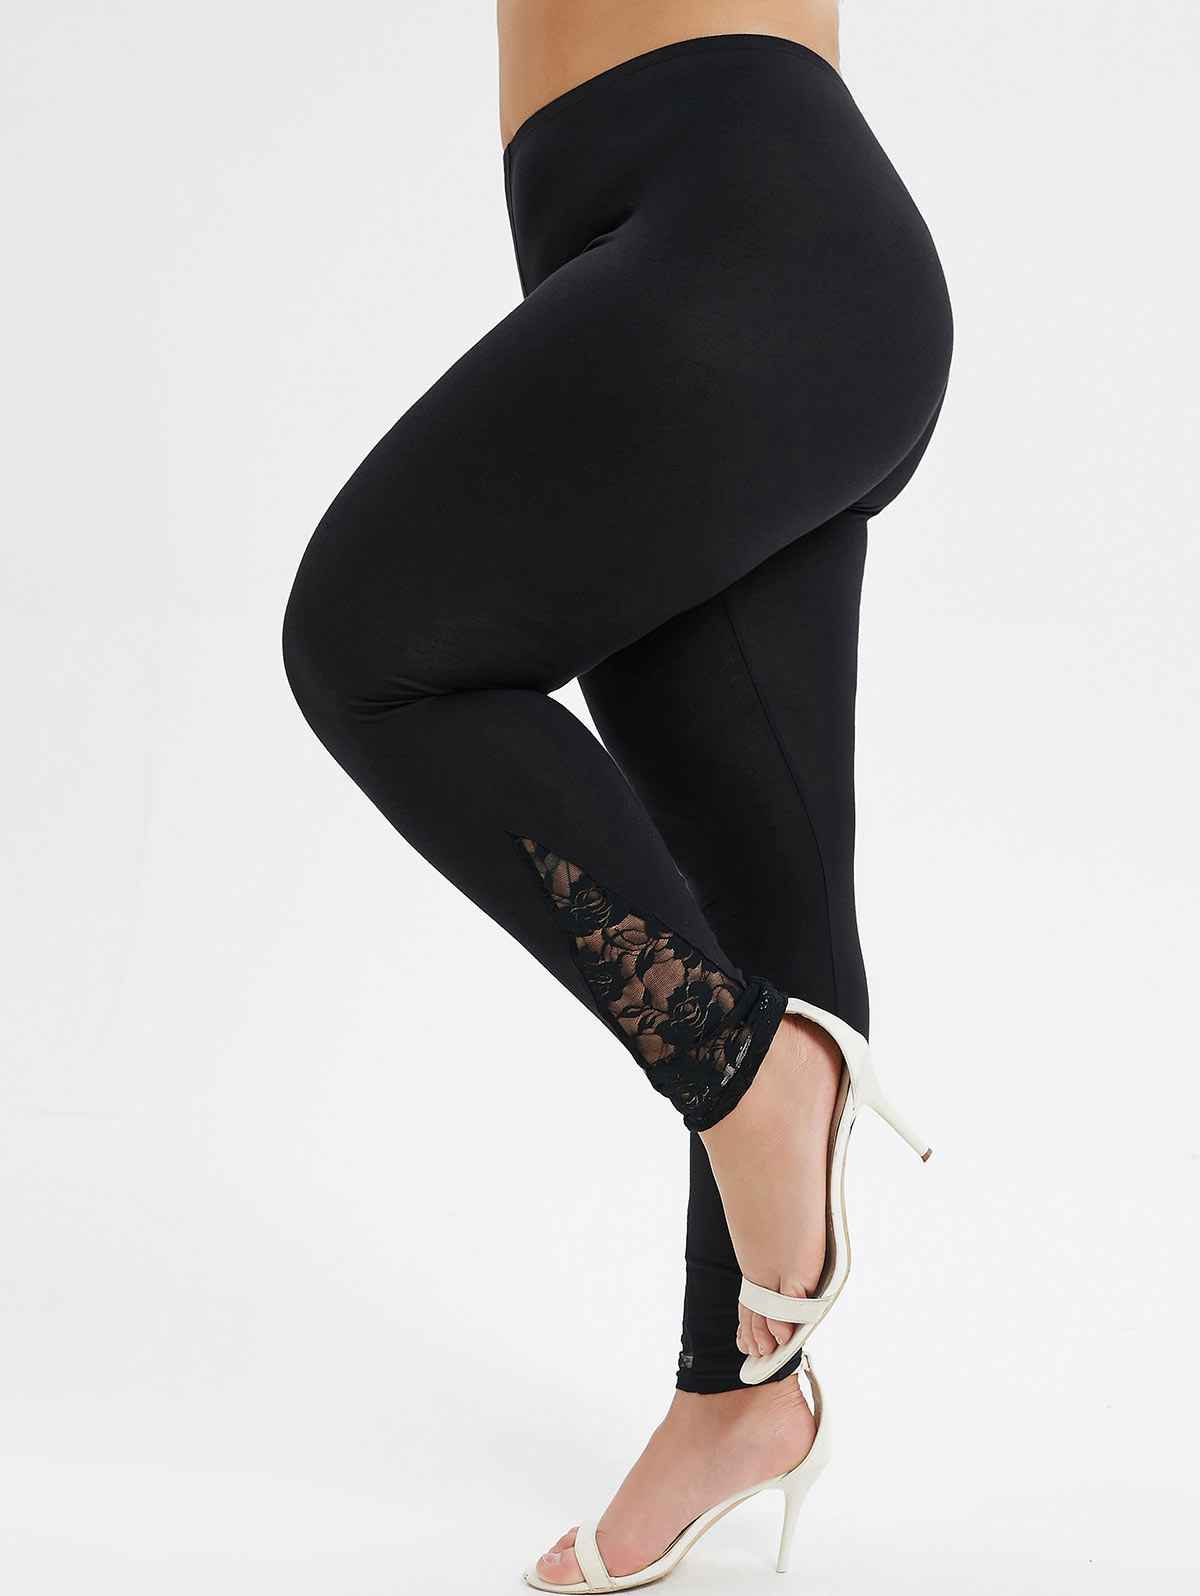 Fashion Plus Size High Rise Lace Panel Leggings Elastic High Waist Women Solid Leggings Sexy Skinny Women Legins 2019 Fall